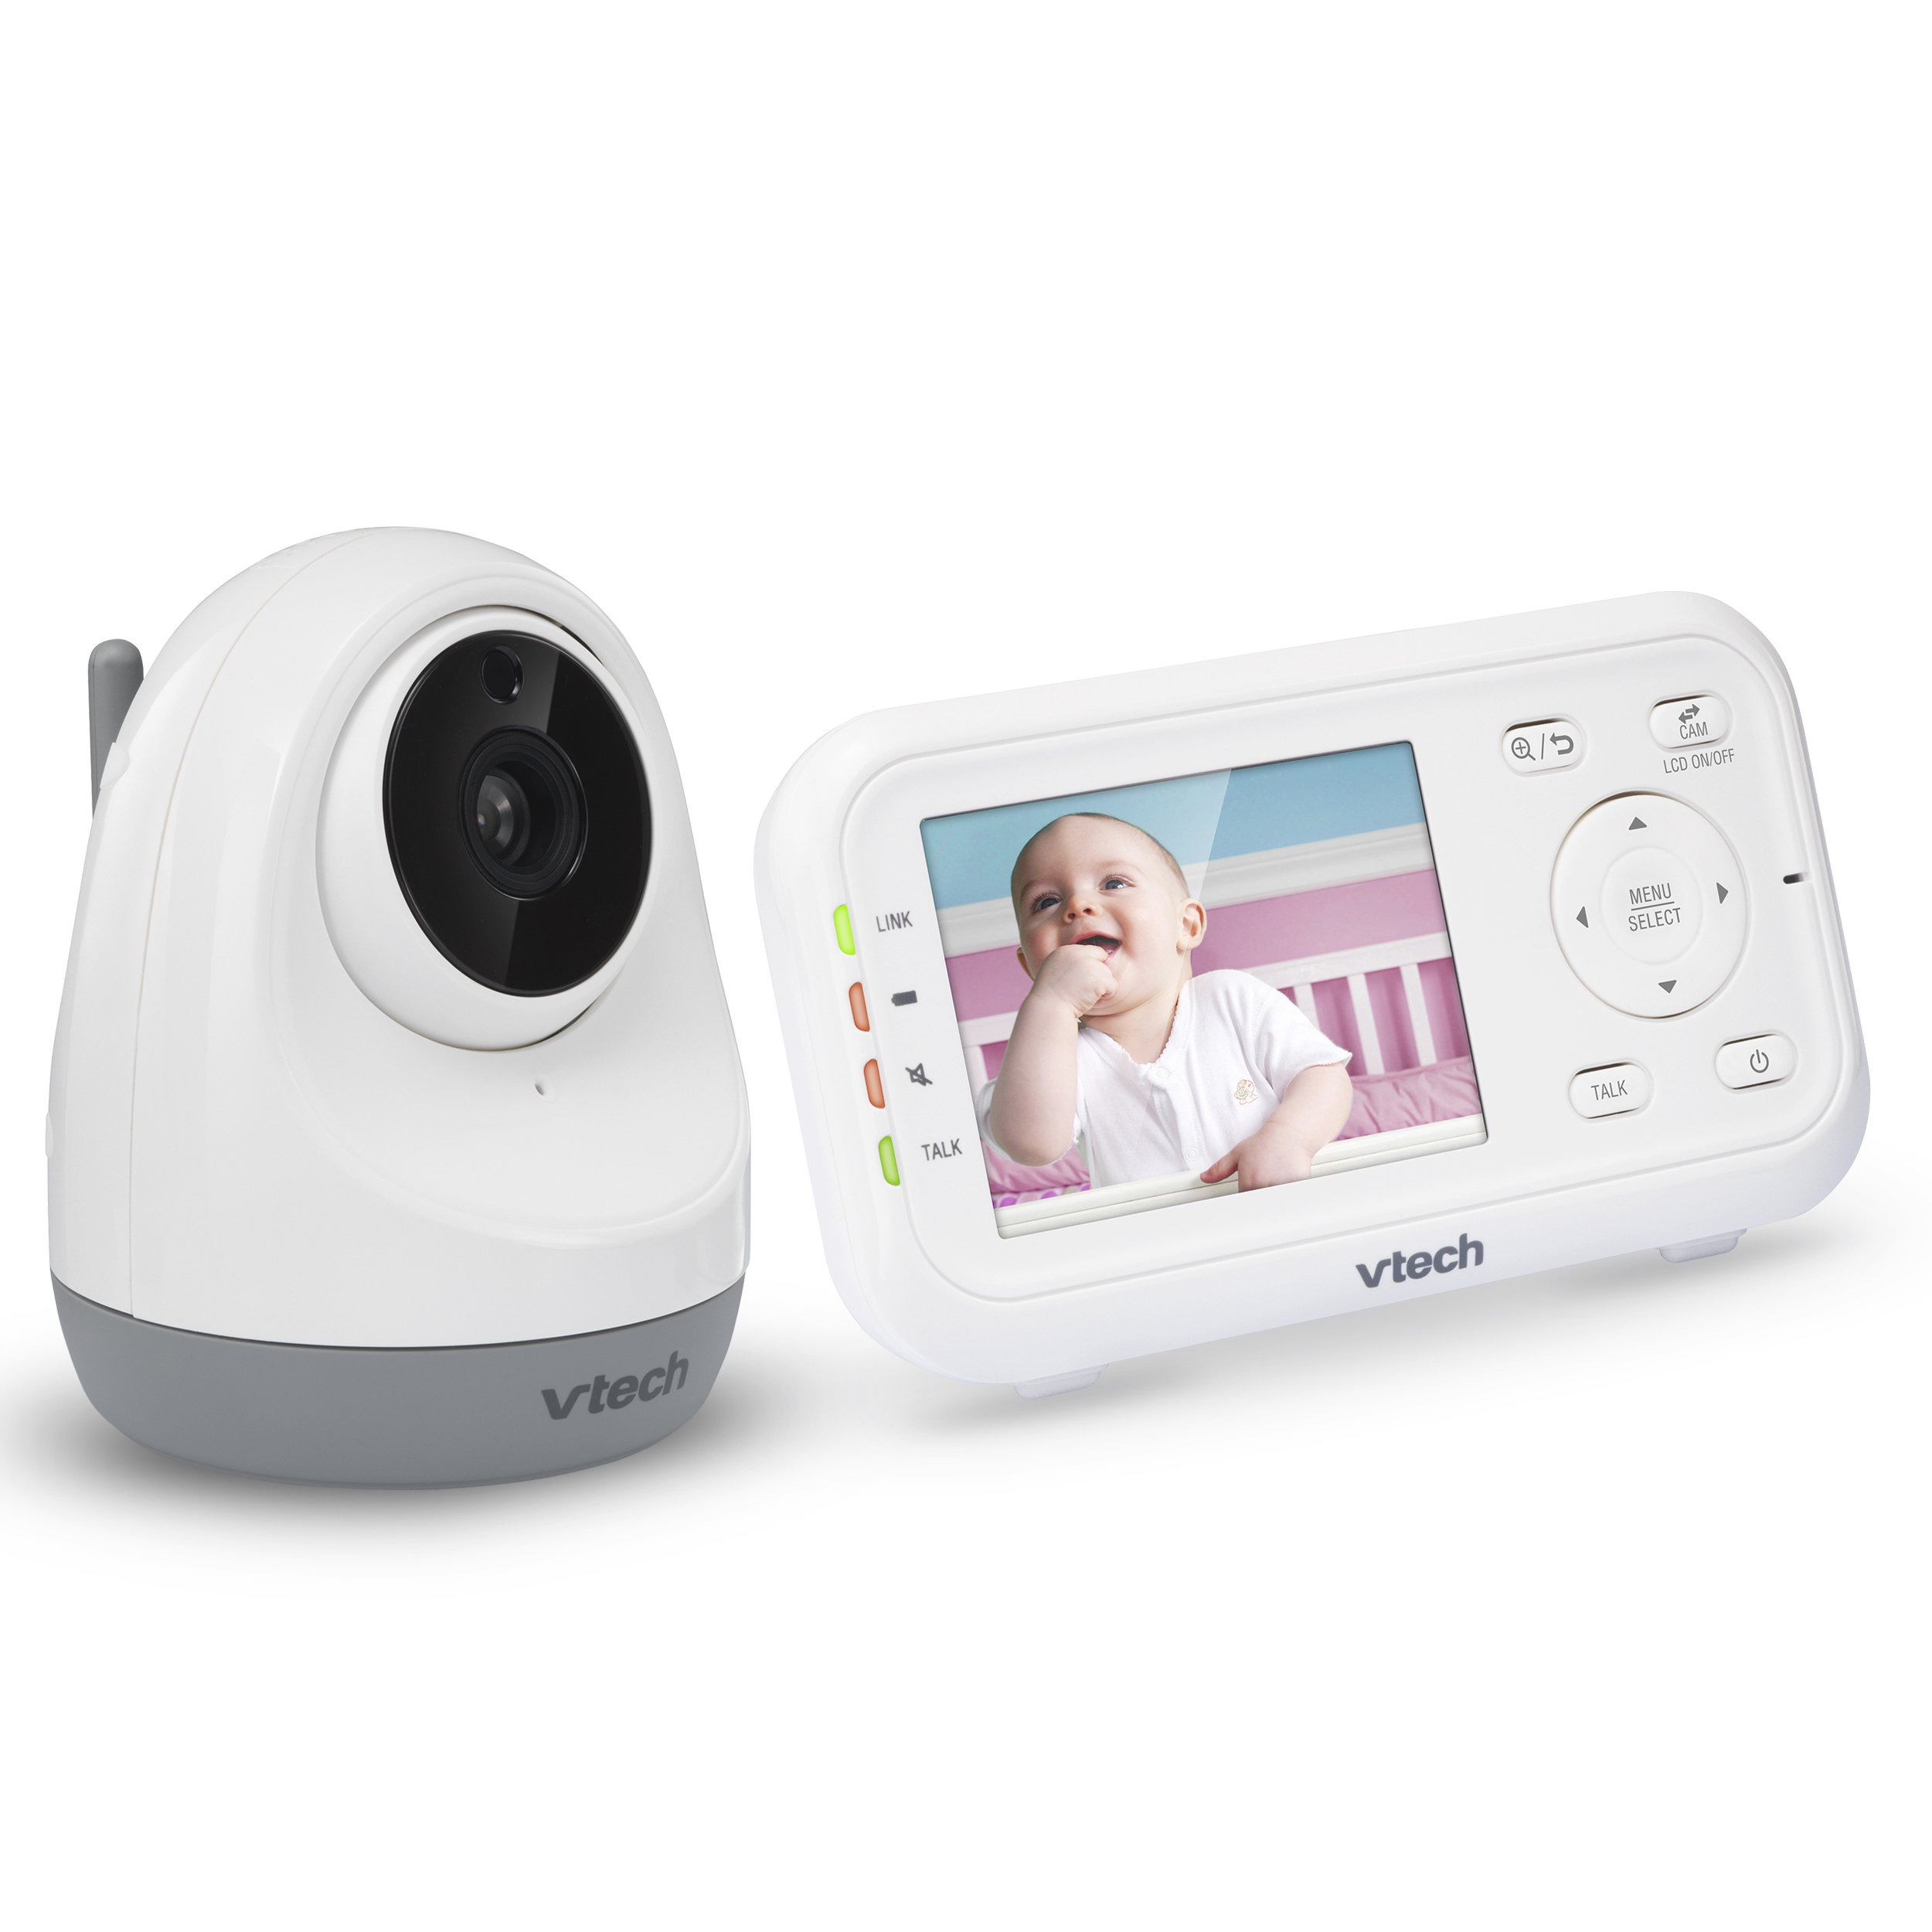 VTech VM3261 2.8'' Digital Video Baby Monitor with Pan & Tilt Camera, Full Color and Automatic Night Vision, White